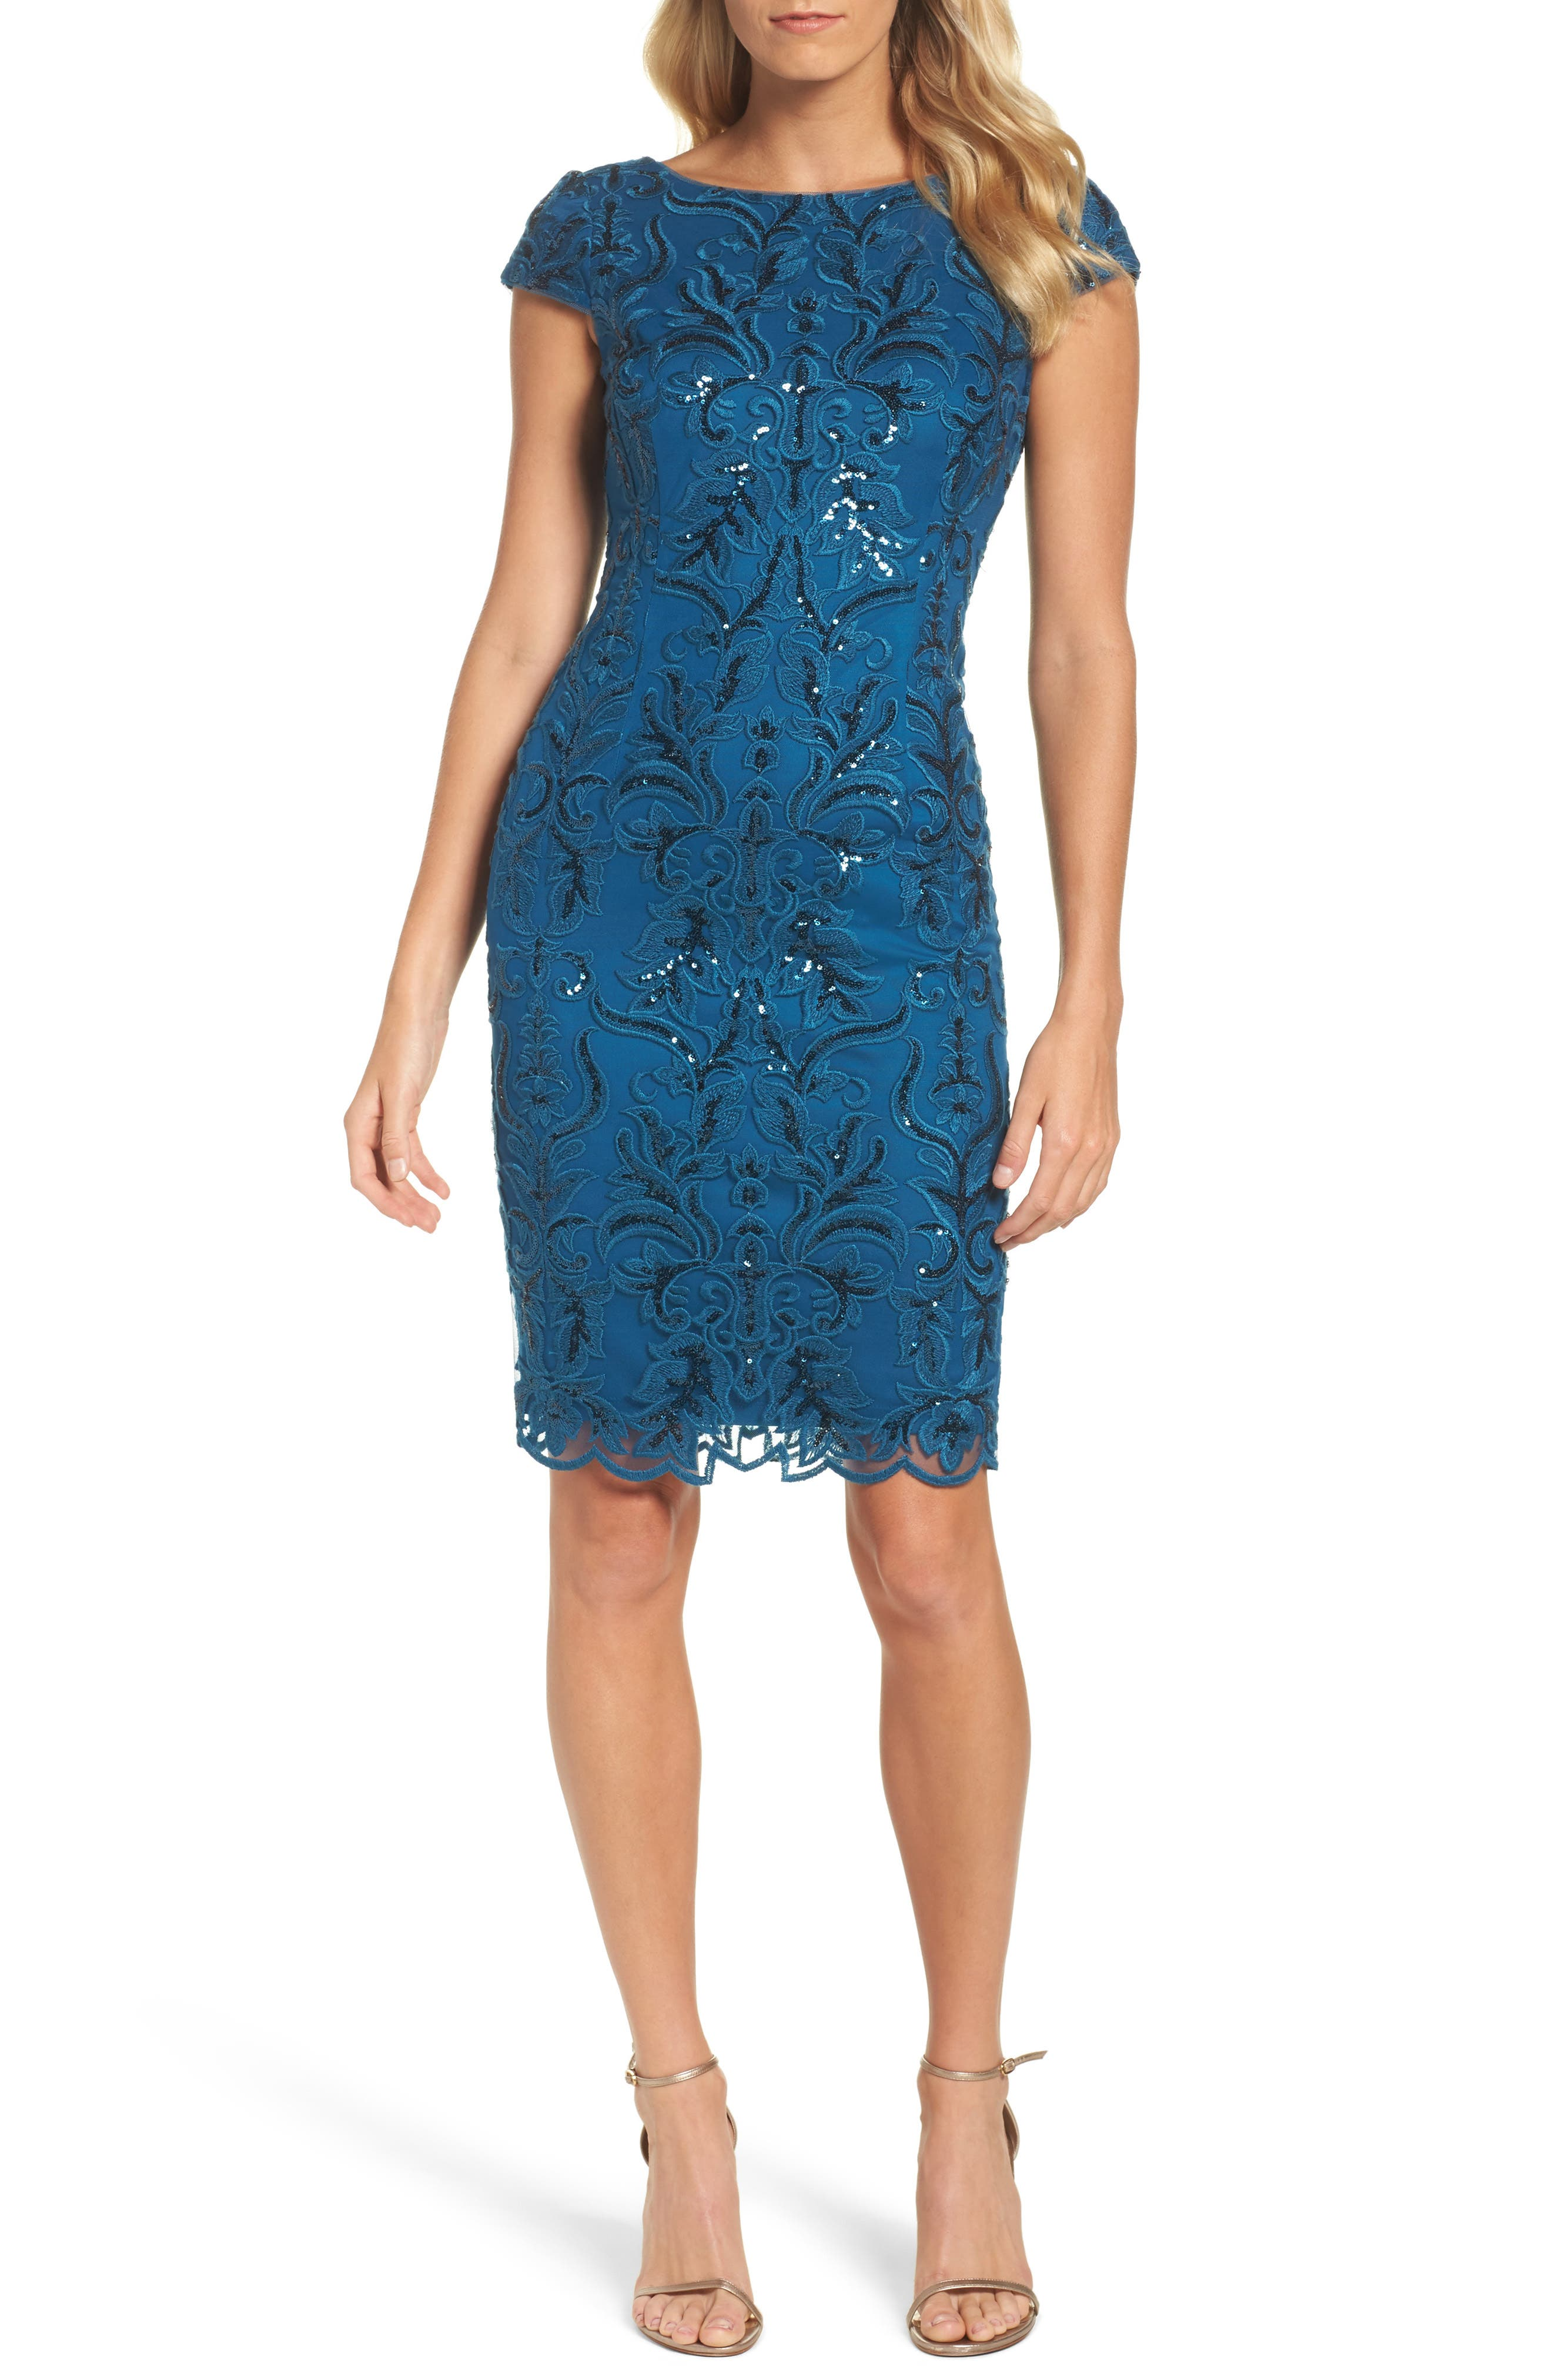 Adrianna Papell Sequin Embroidered Sheath Dress